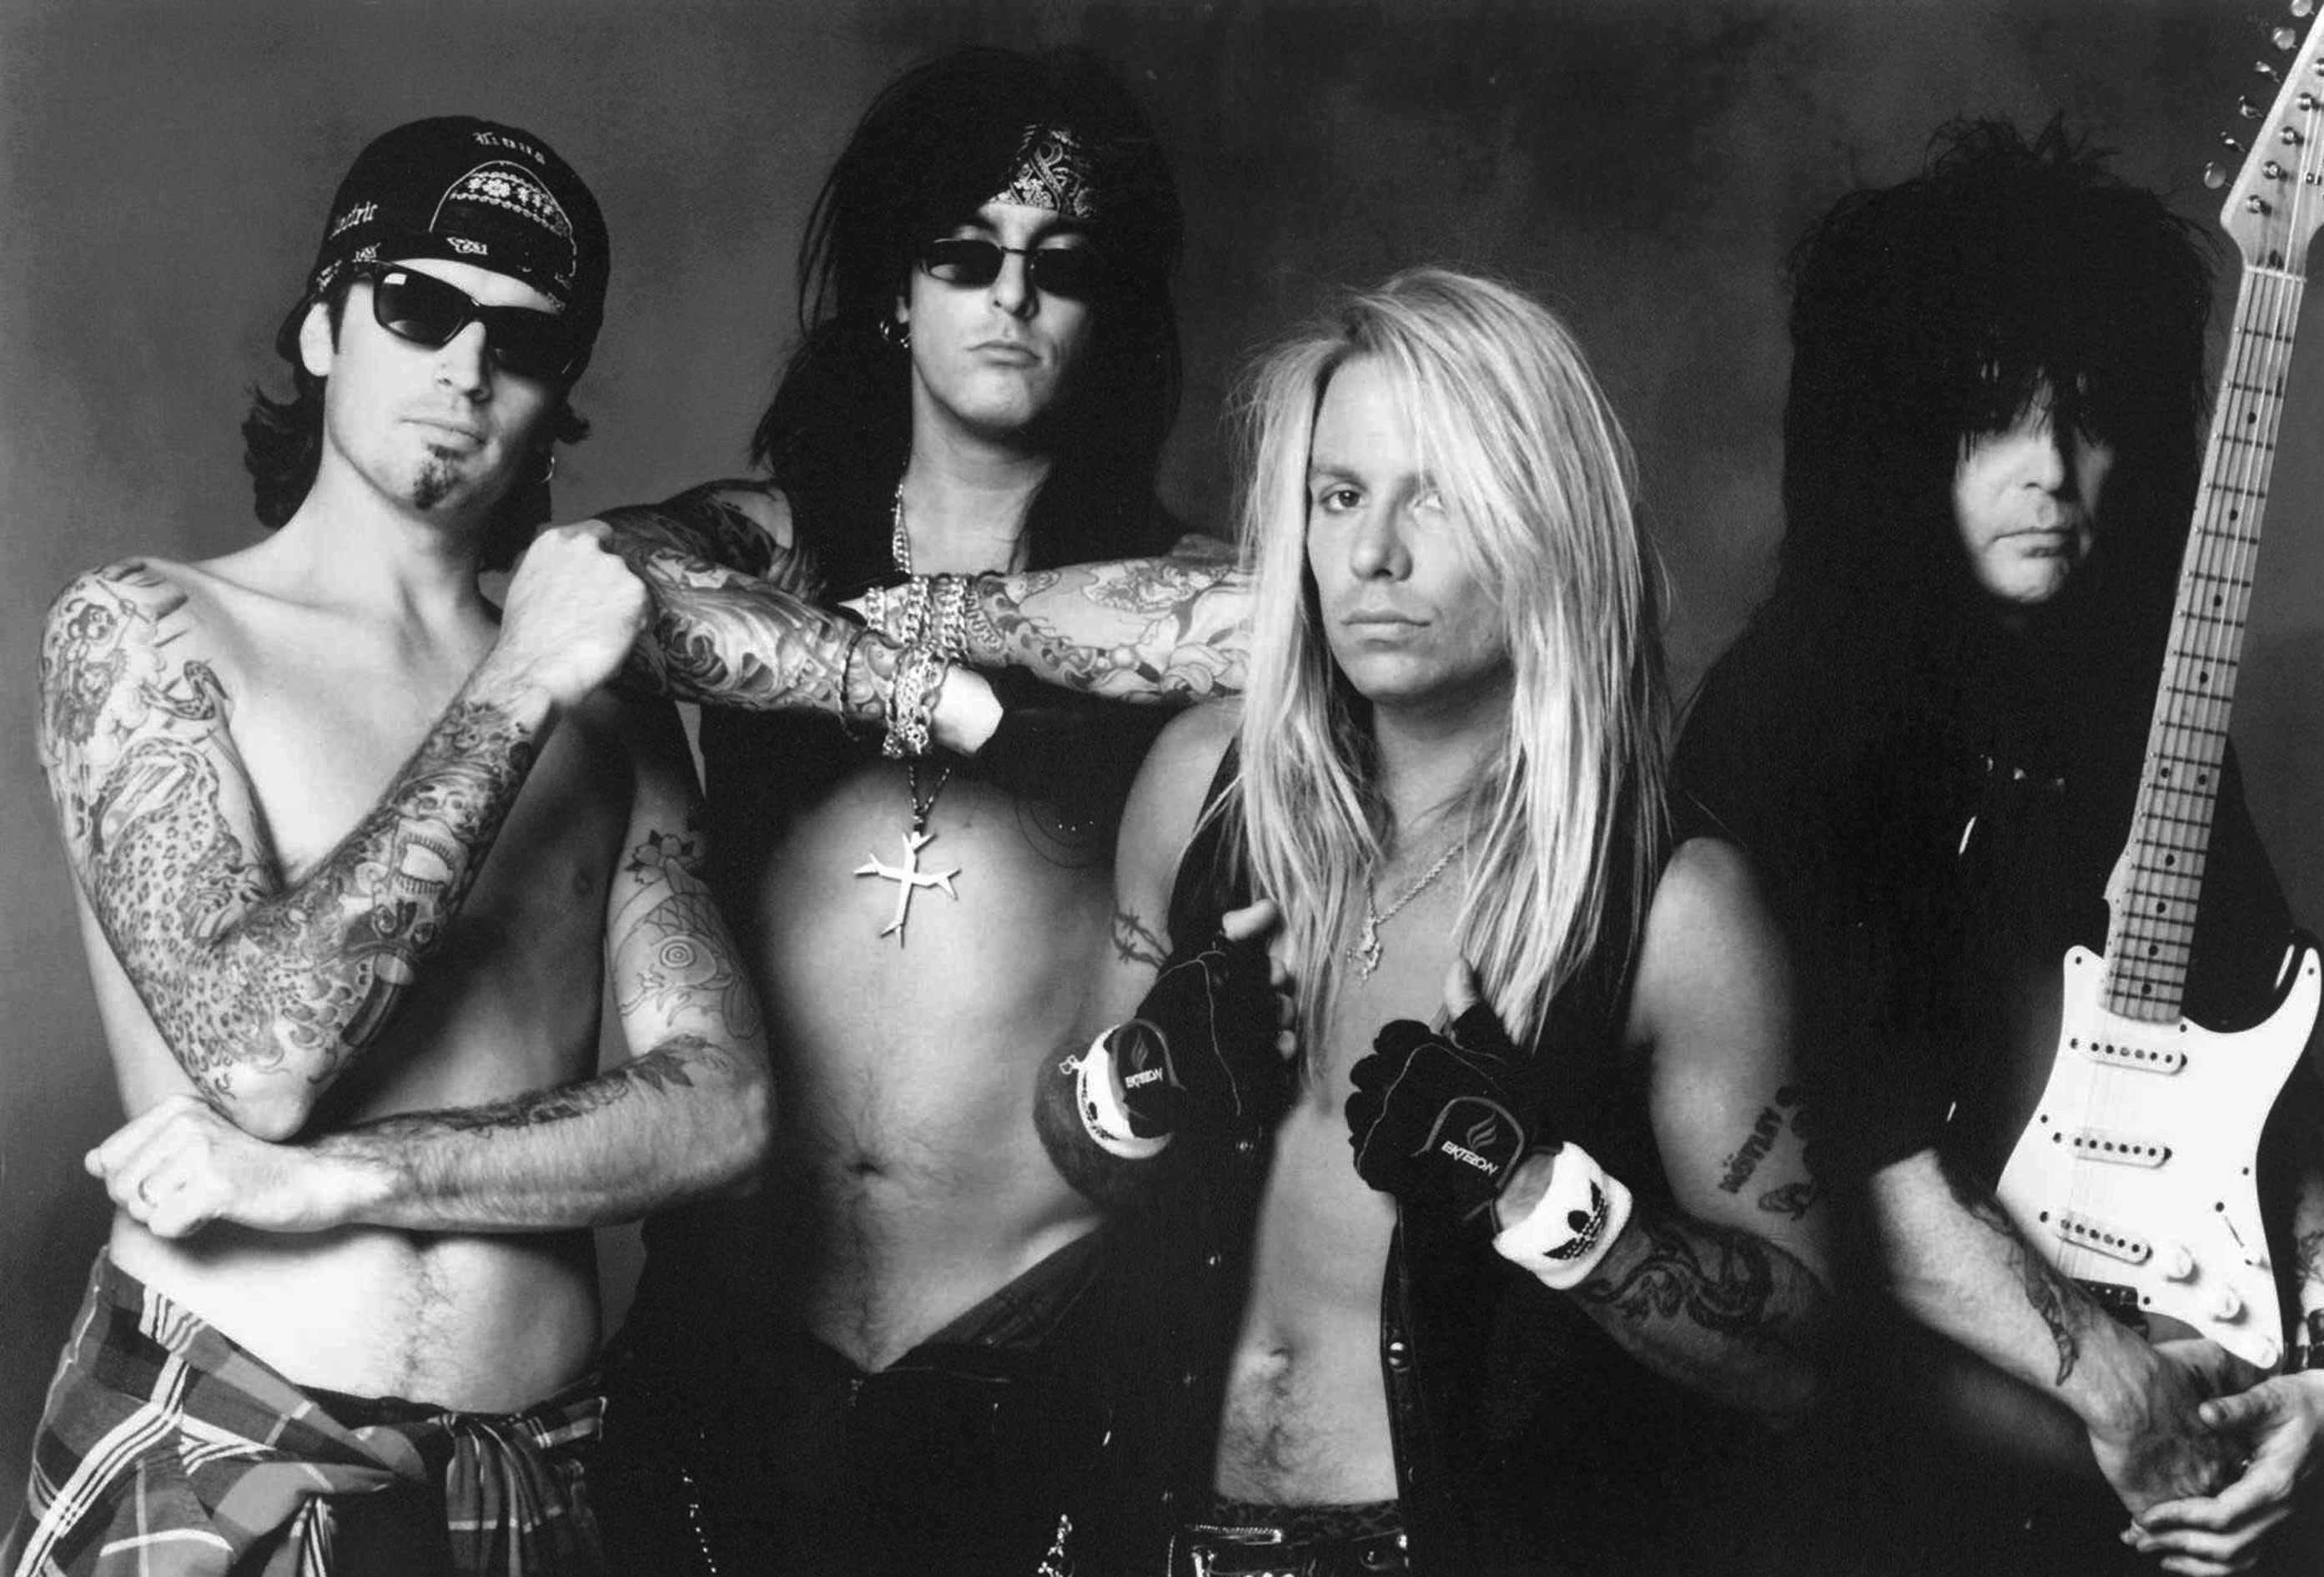 'I was doing $1,000 a day in heroin': Motley Crue on hard-partying past, Netflix's 'Dirt'